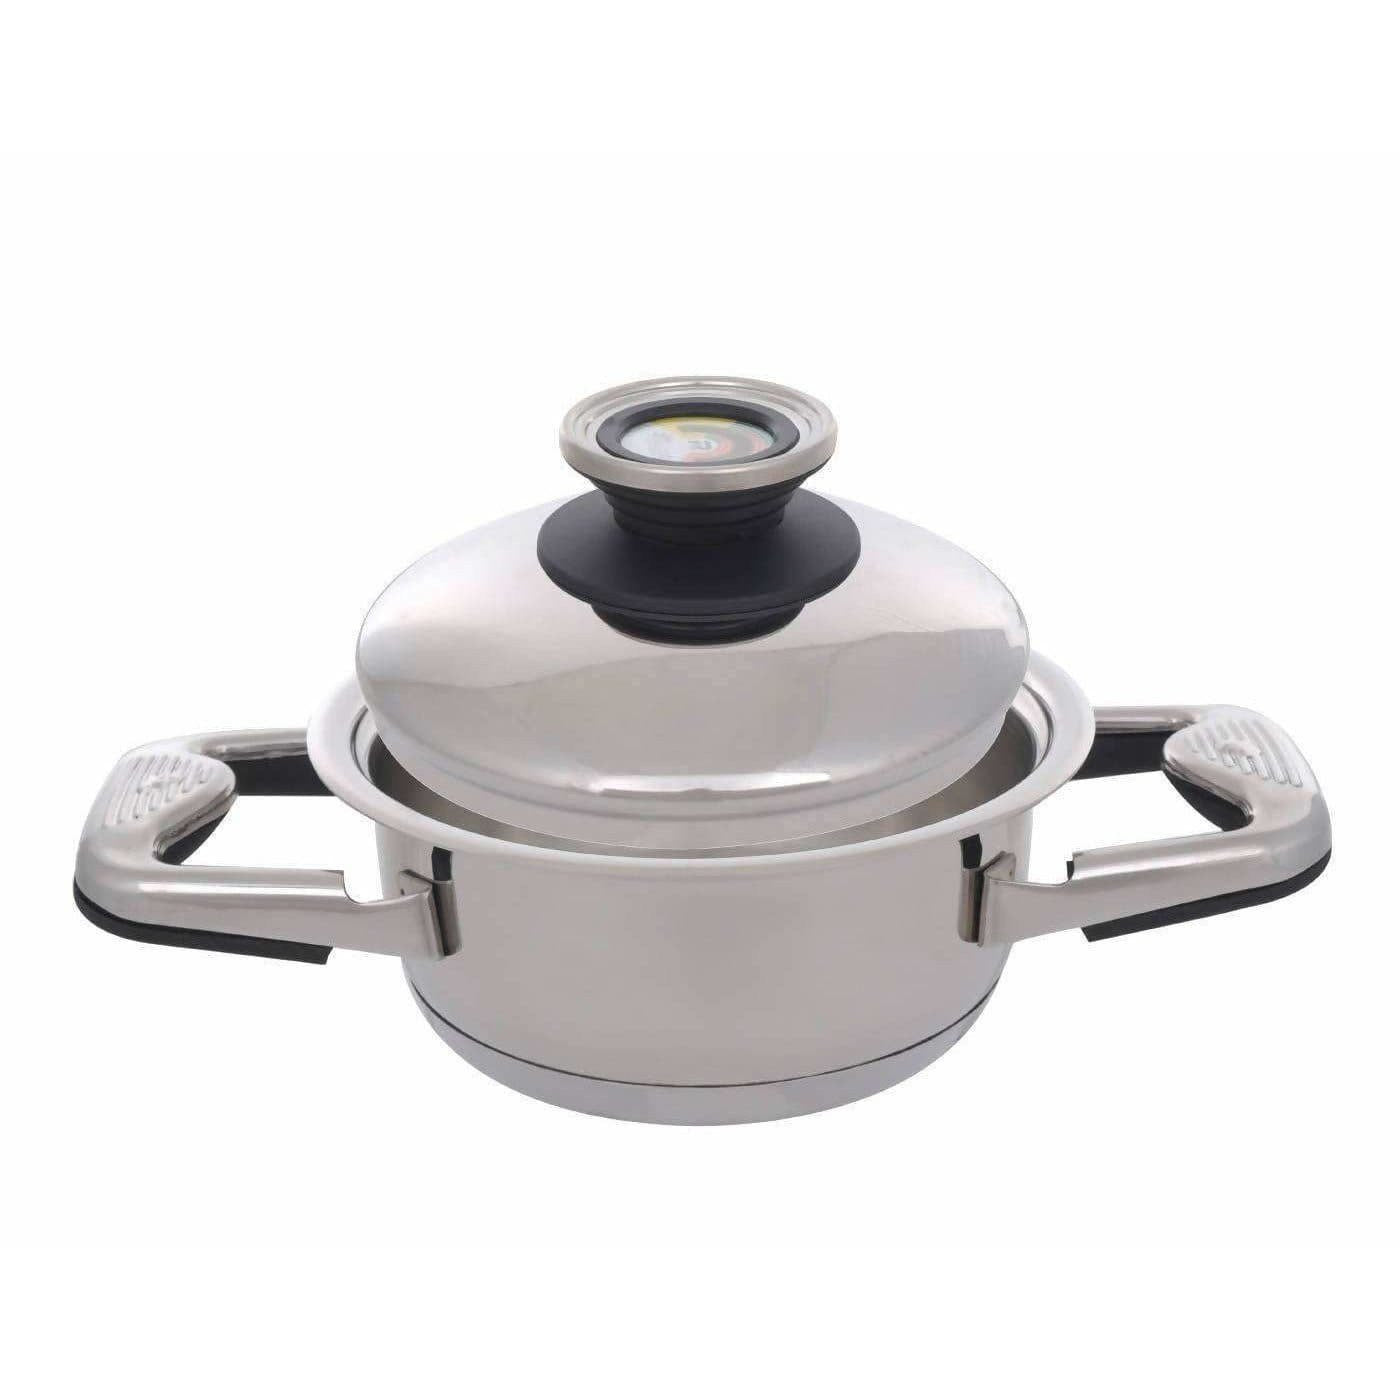 Nutricook - High grade SS 316L Cookware Oil Less & Water Less Sauce Pot with Lid 1.1 Litre 16 cm dia